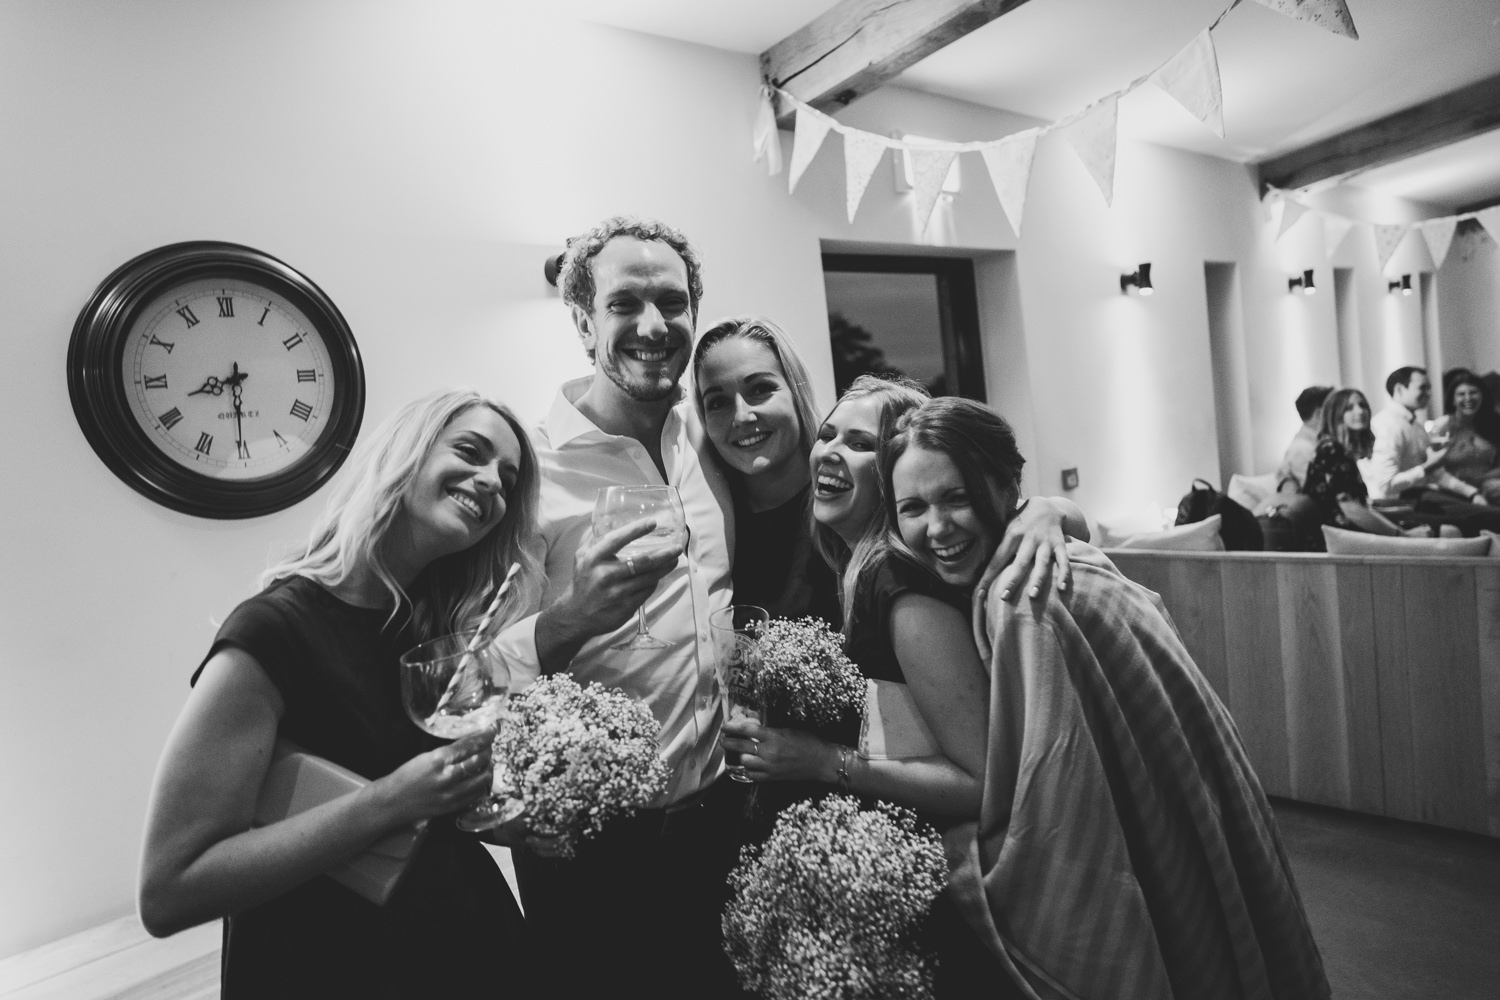 upton barn wedding27.jpg